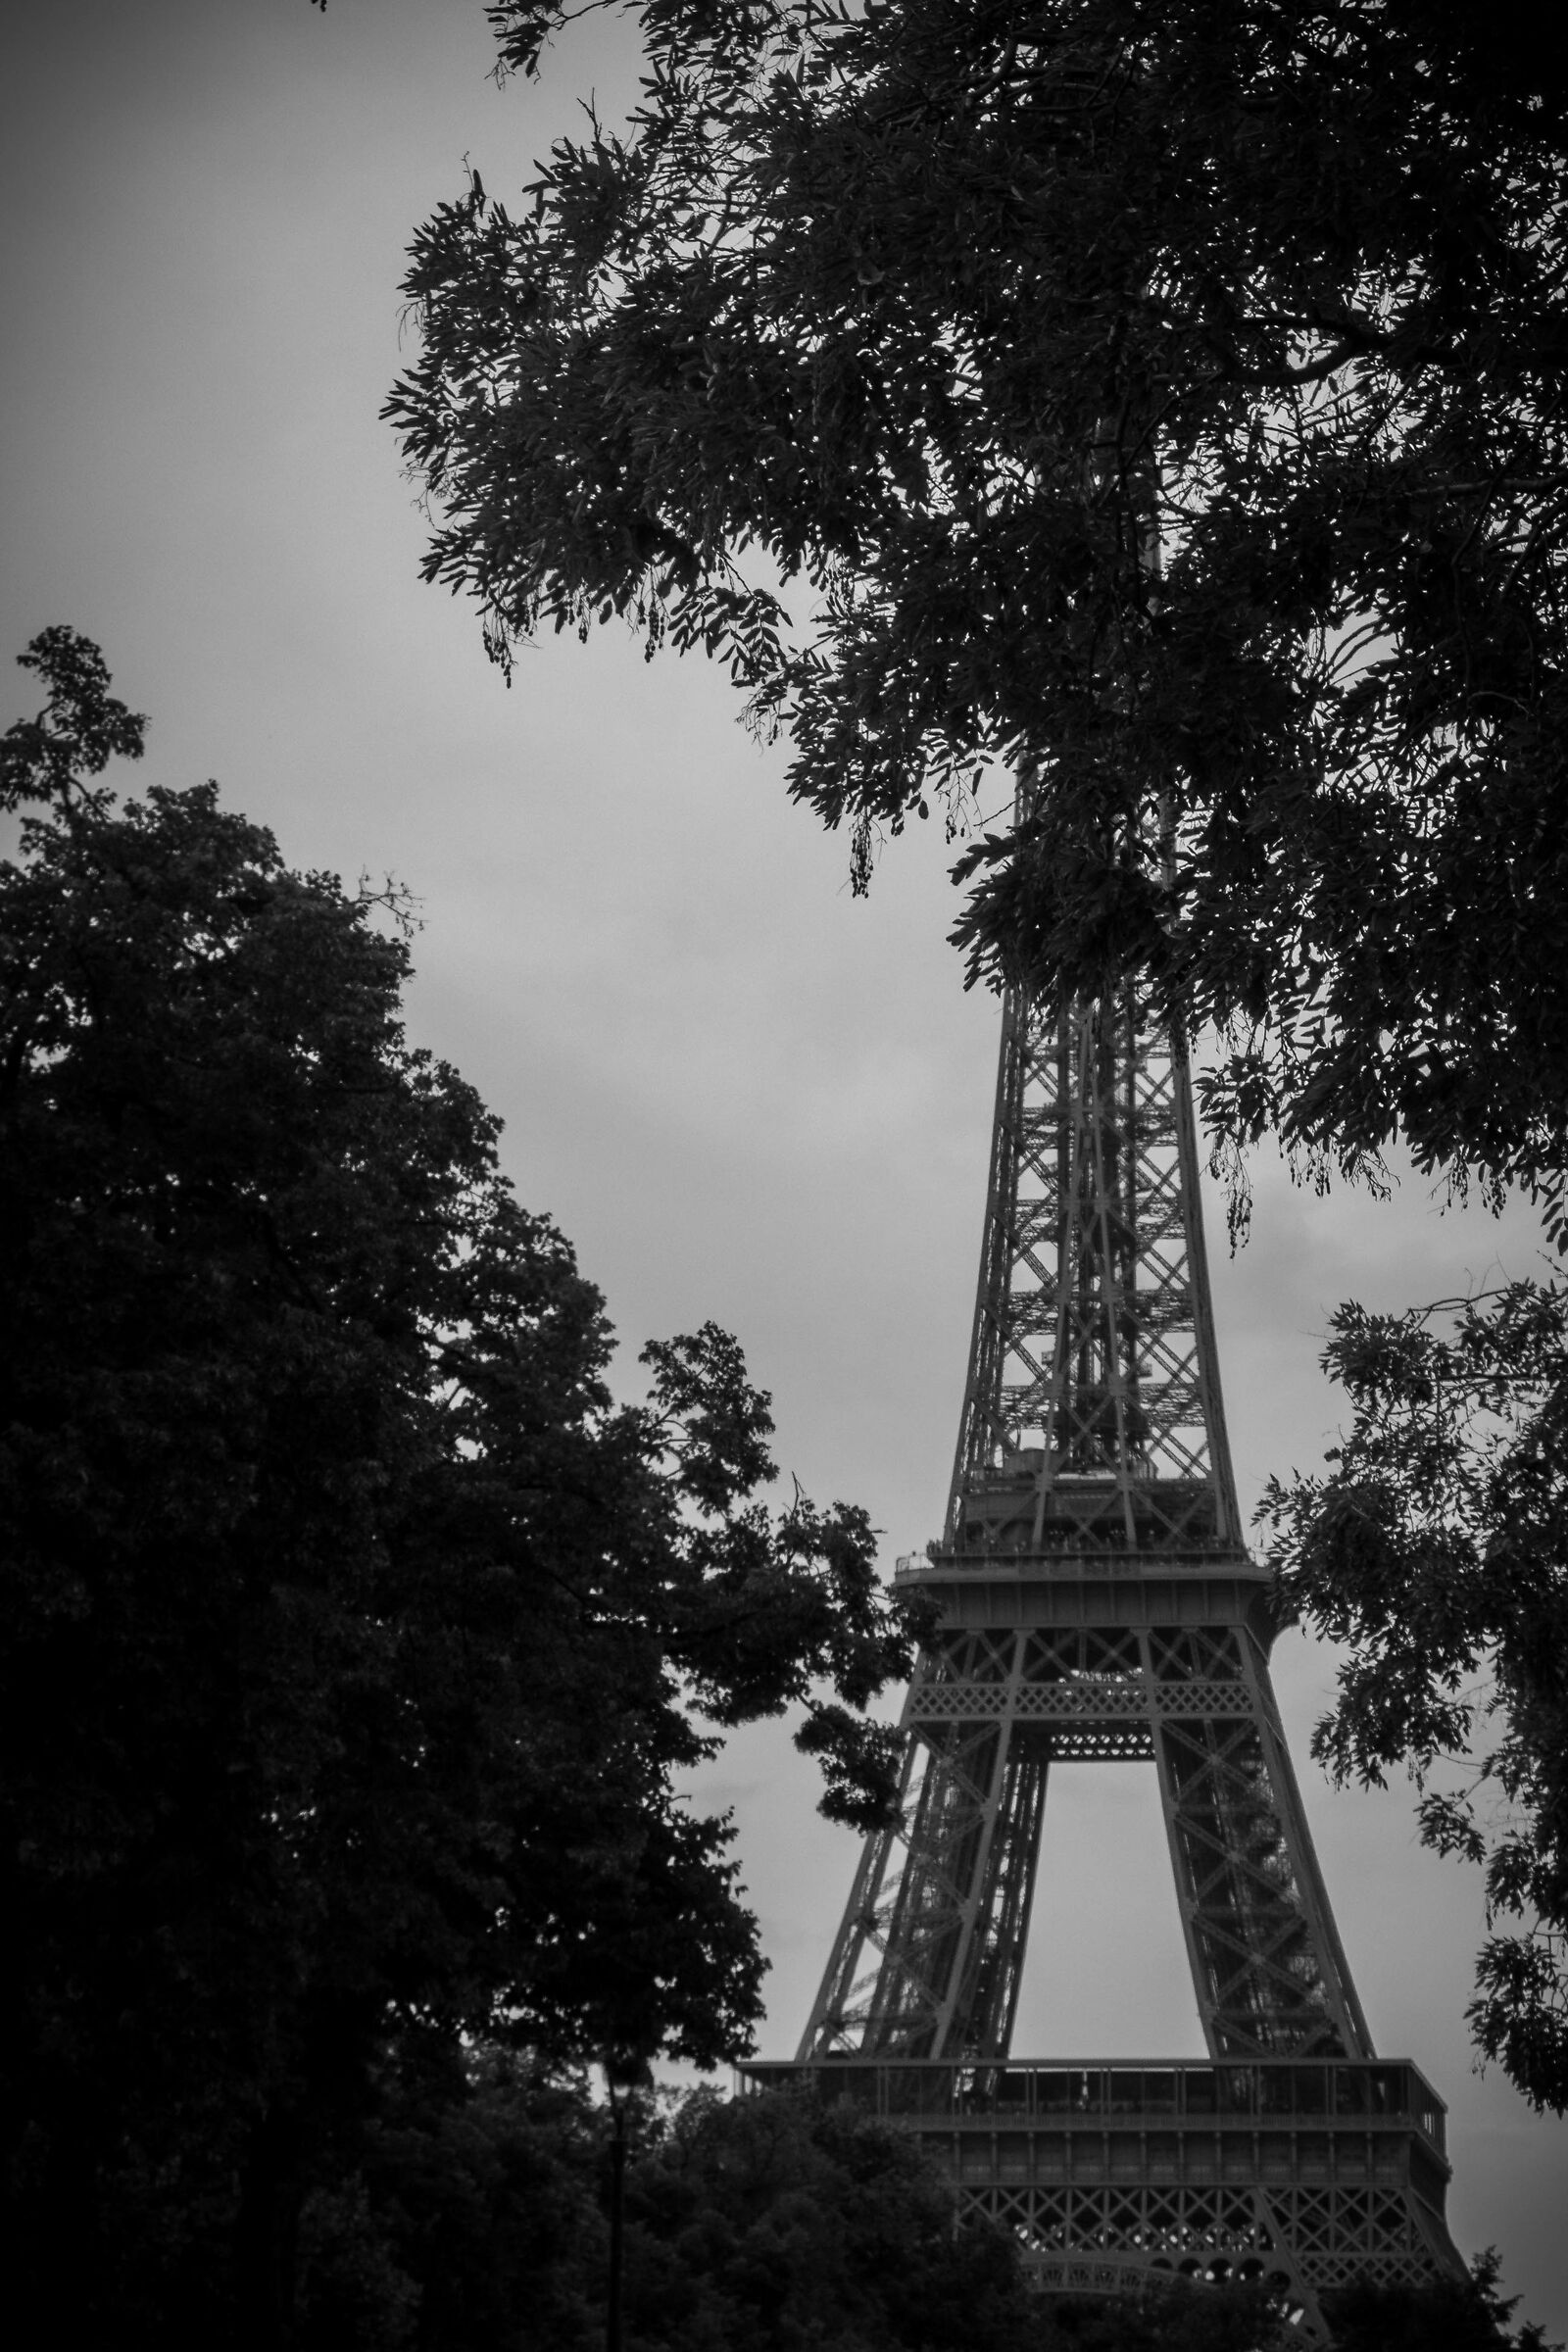 The Eiffel Tower...